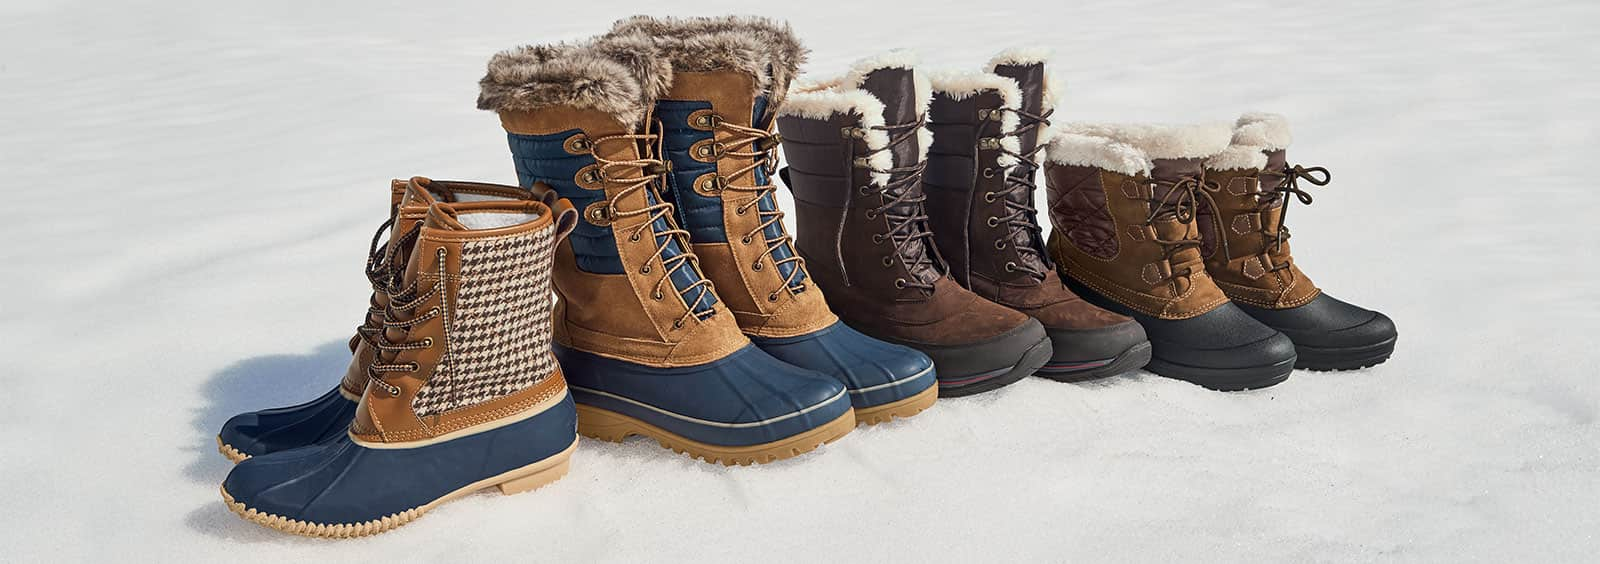 How to Choose the Right Boots for Your Climate